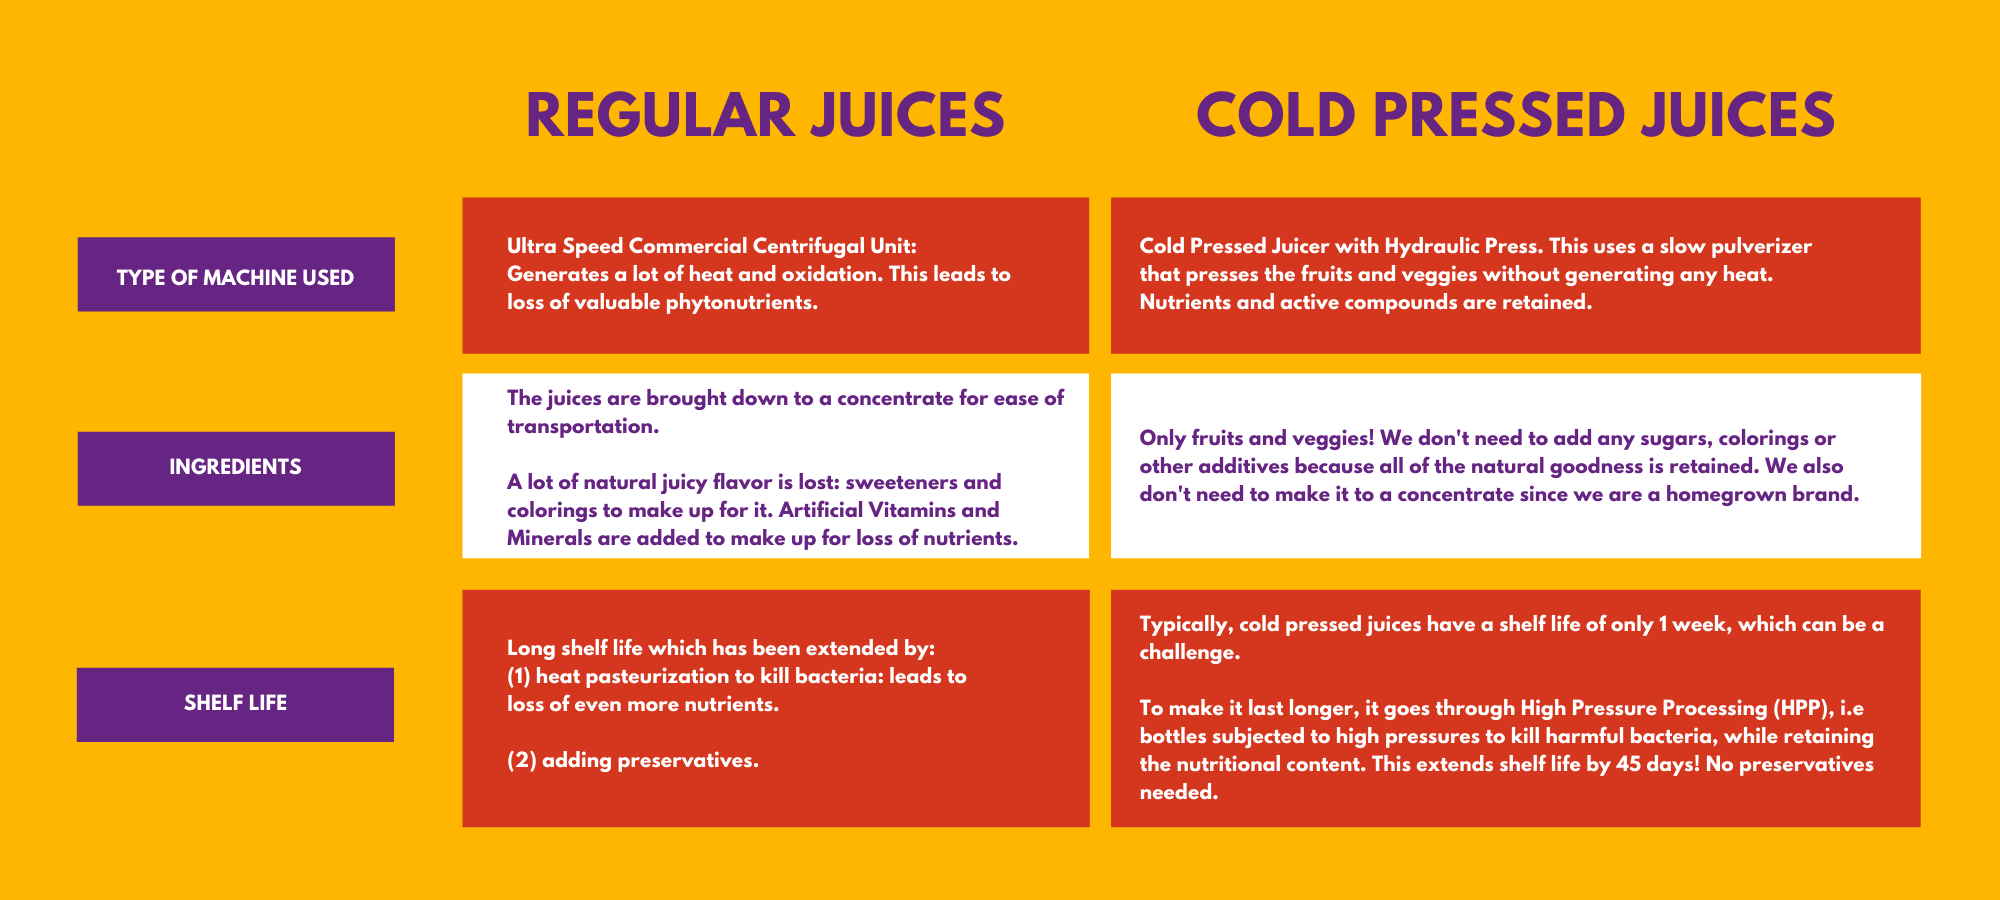 Regular Juices vs. Cold-Pressed Juices